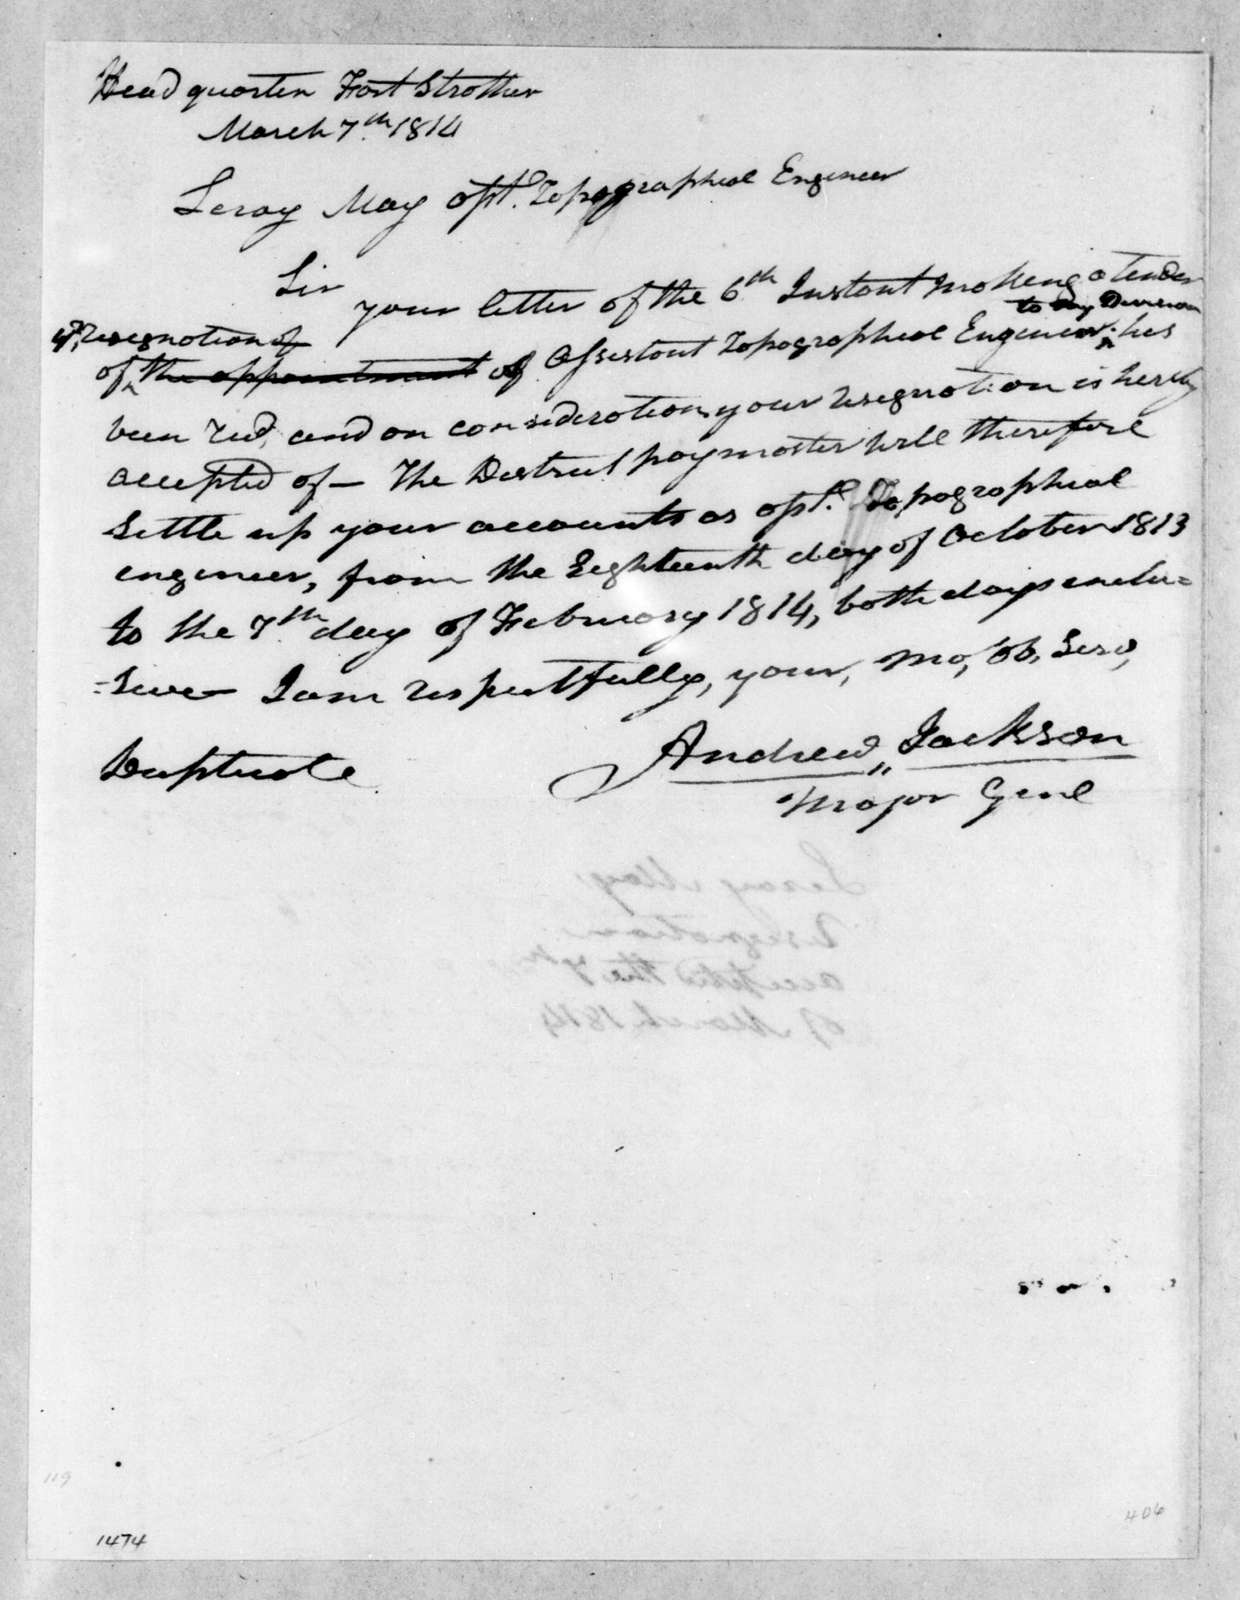 Andrew Jackson to Leroy May, March 7, 1814